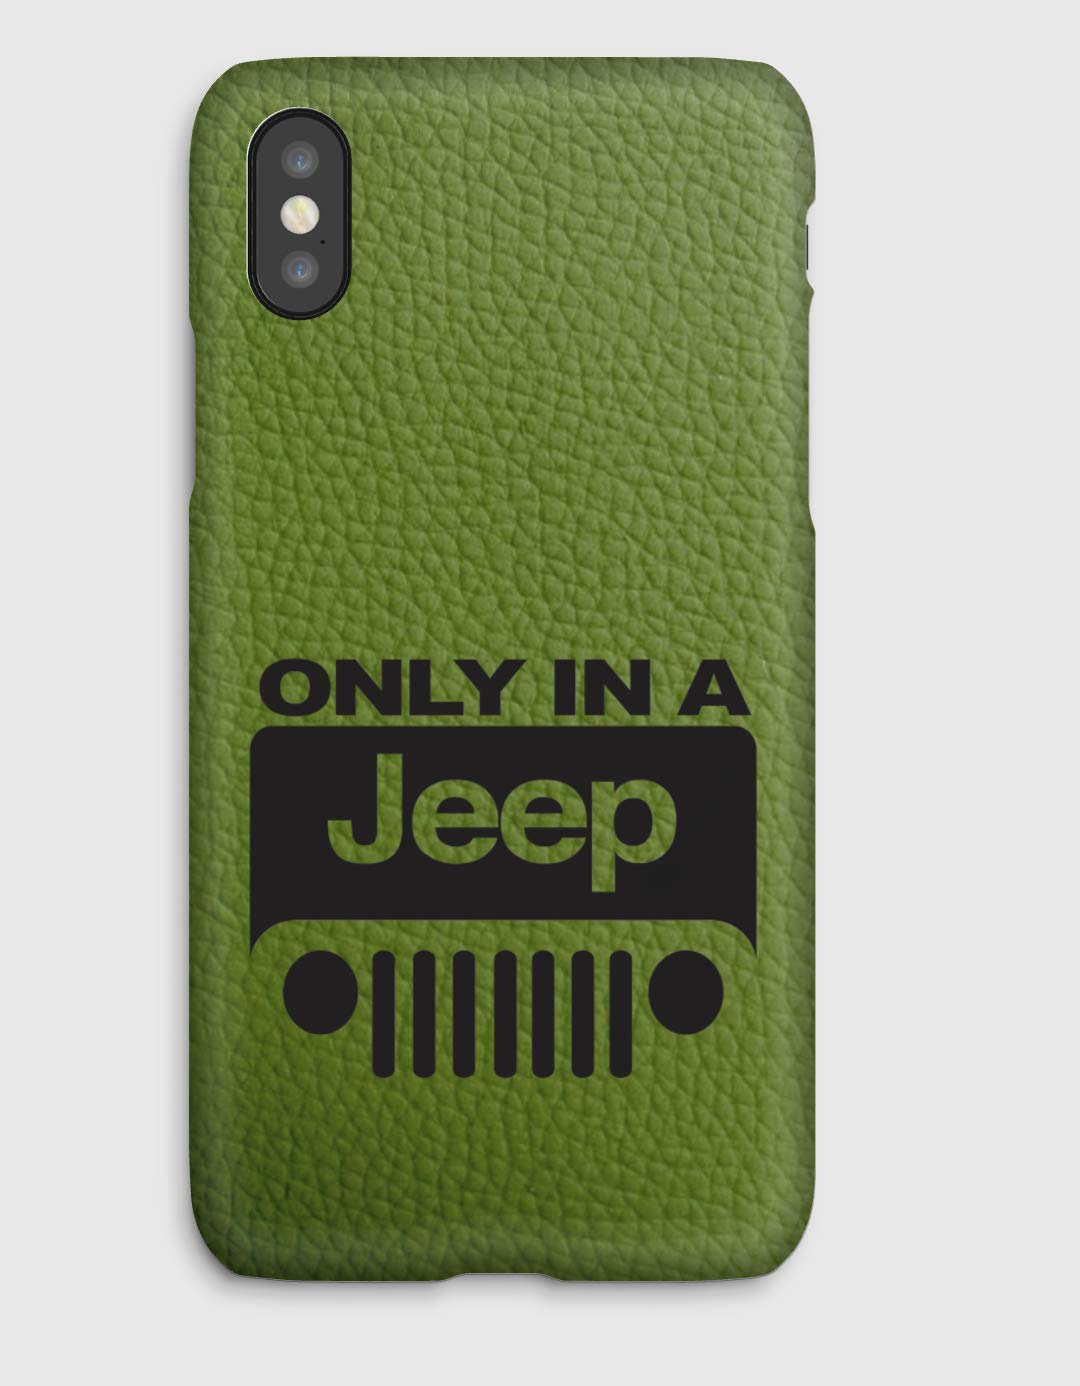 Funda para el iPhone X, 8, 8+, 7, 7+, 6S, 6, 6S+, 6+, 5C, 5, 5S, 5SE, 4S, 4, Only in a Jeep